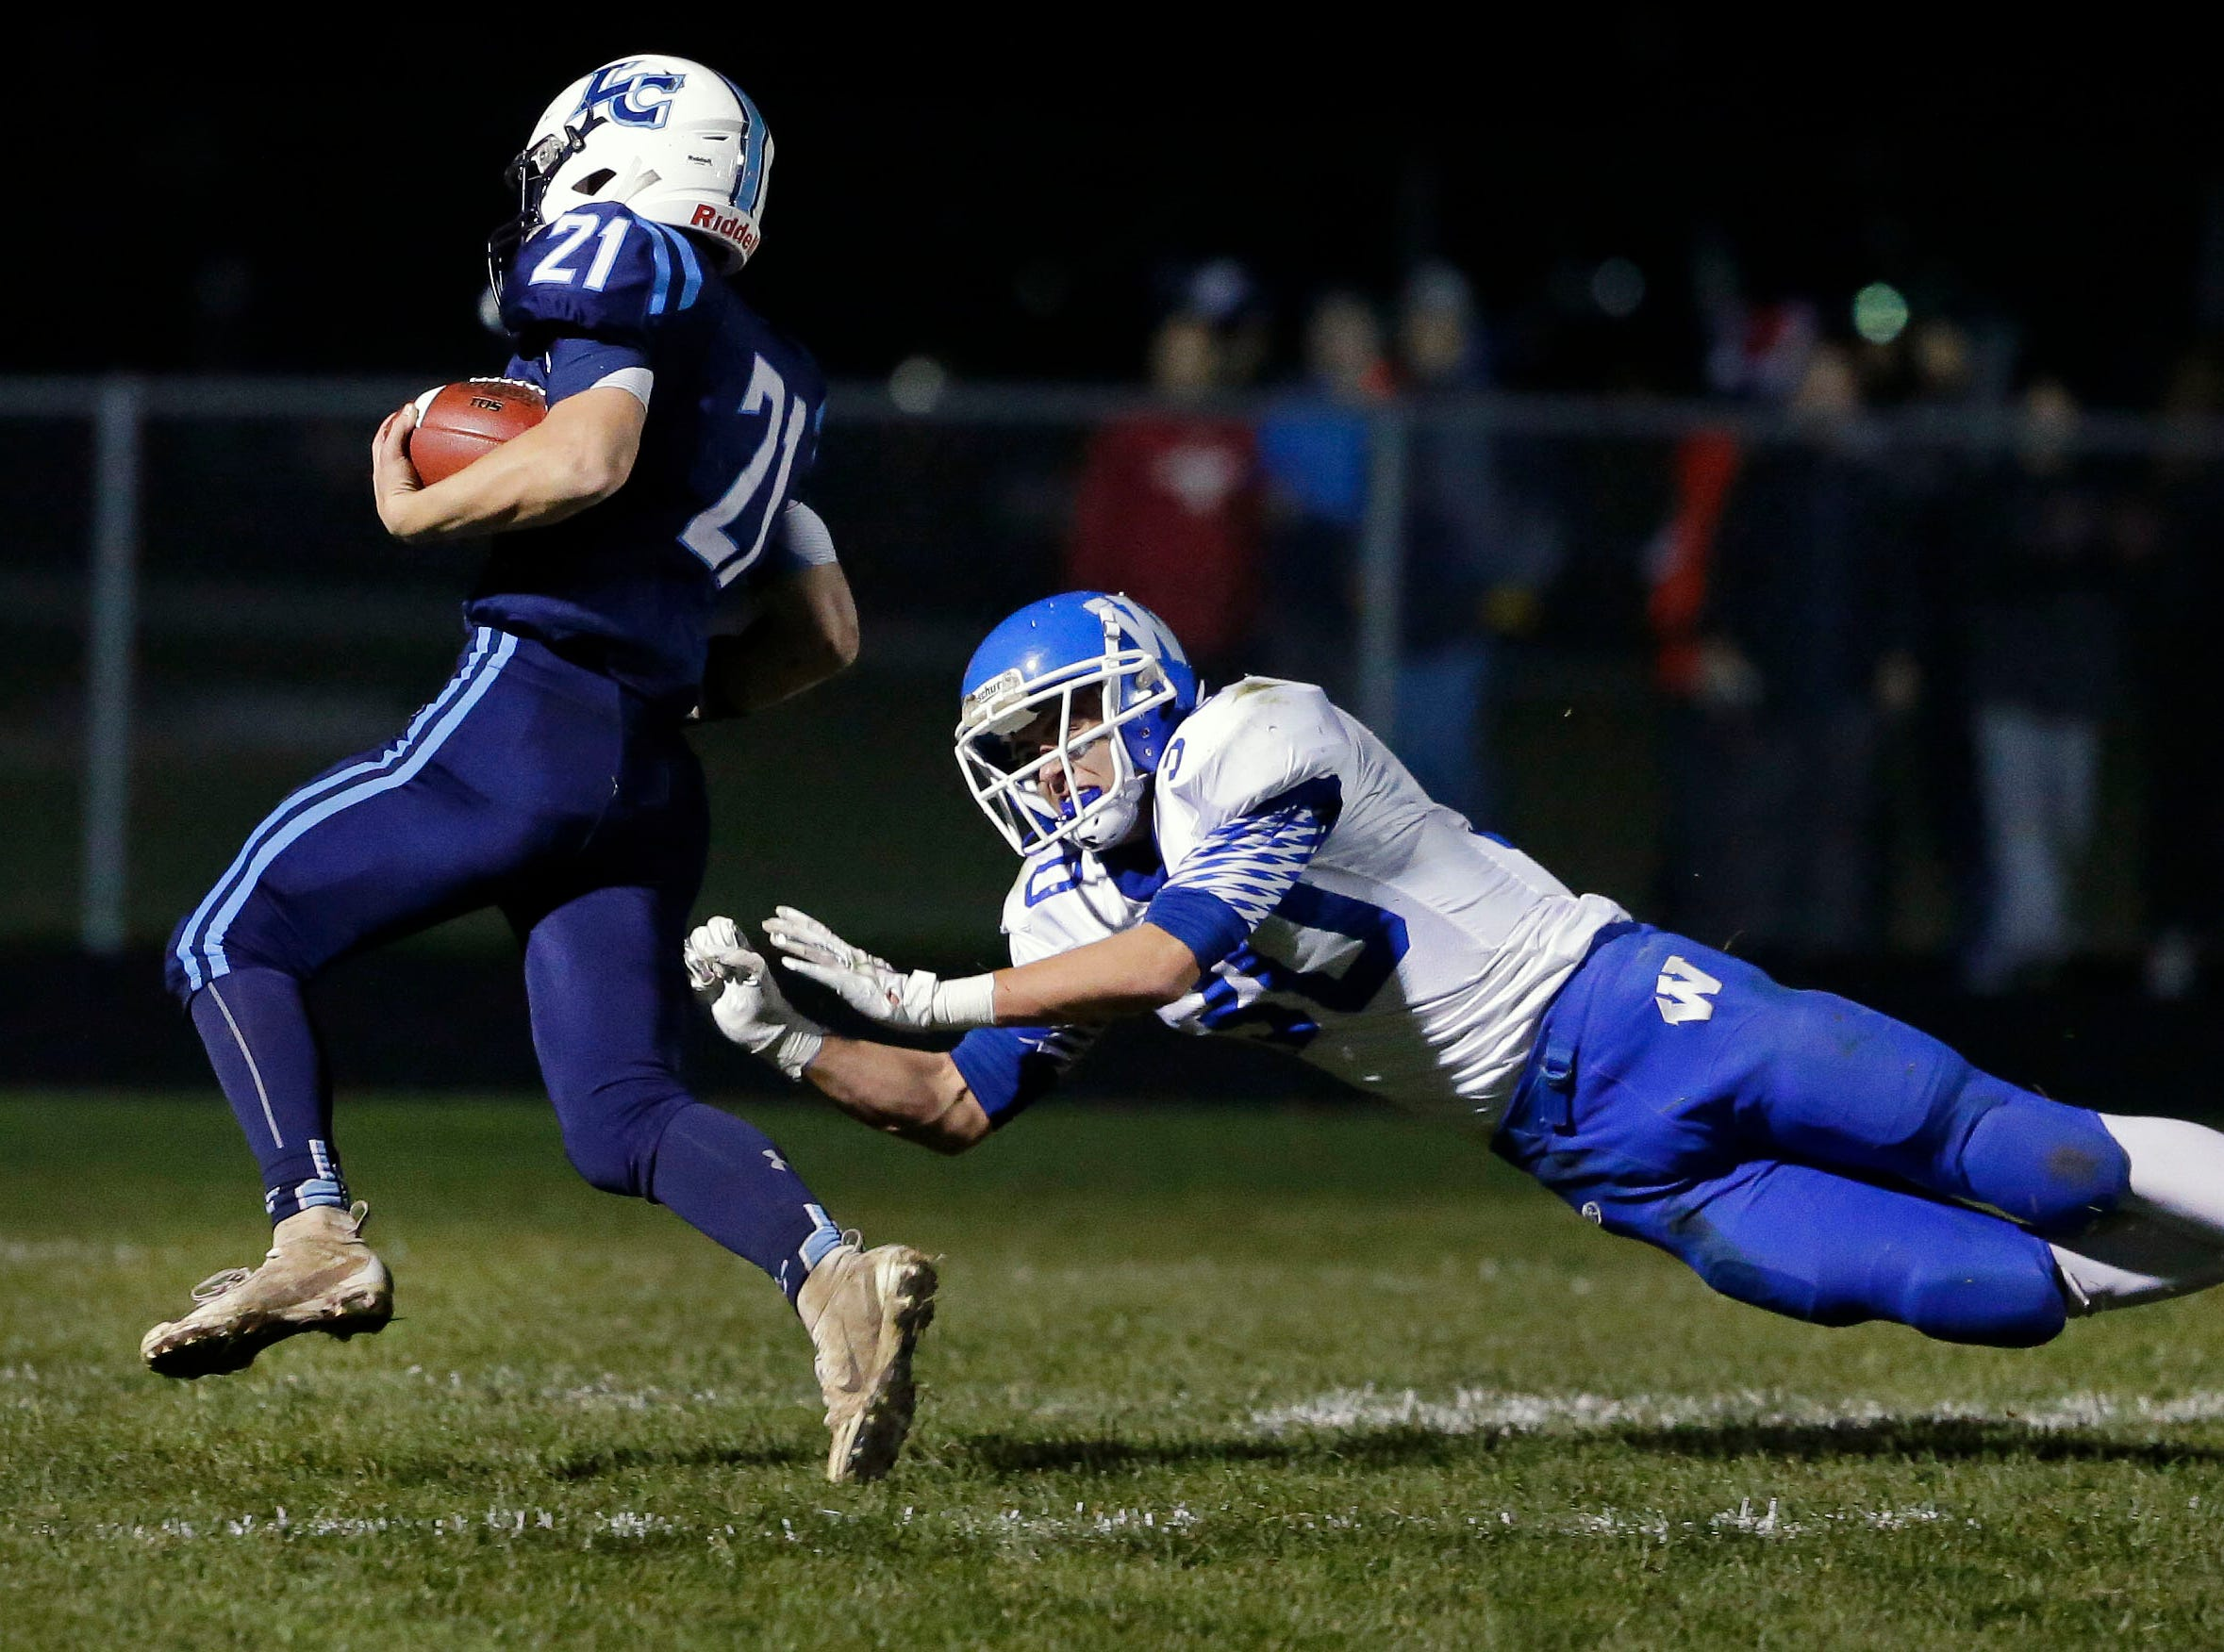 Isaac Van Deurzen of Little Chute runs for a touchdown as he gets away from Jeremy Van Zeeland of Wrightstown in a WIAA Division 4 Level 3 playoff game Friday, November 2, 2018, at Fitzpatrick Field in Little Chute, Wis.Ron Page/USA TODAY NETWORK-Wisconsin